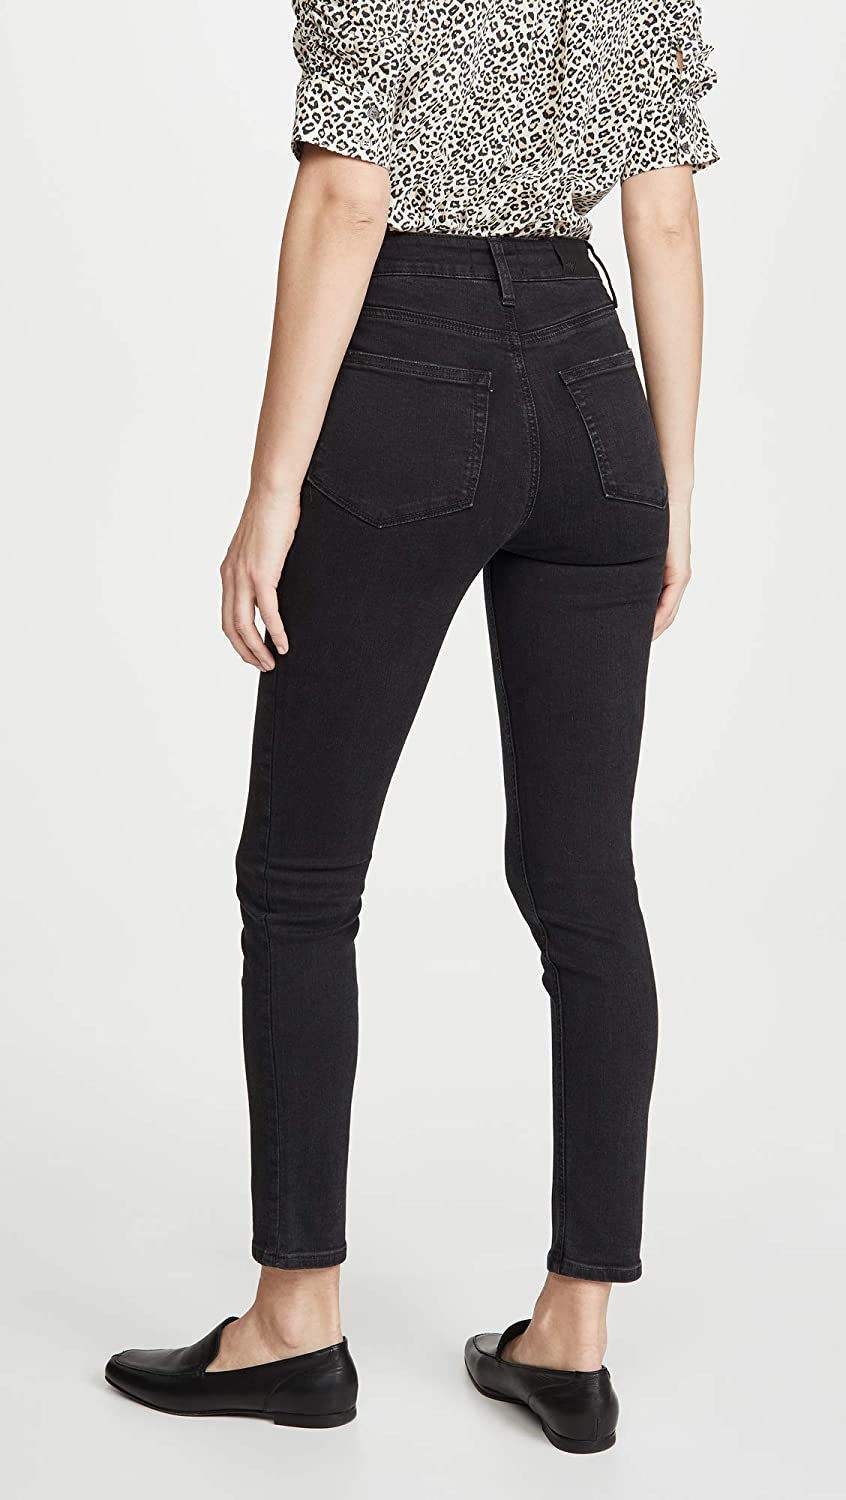 PAIGE Womens Margot Ankle Jeans with Front Yoke